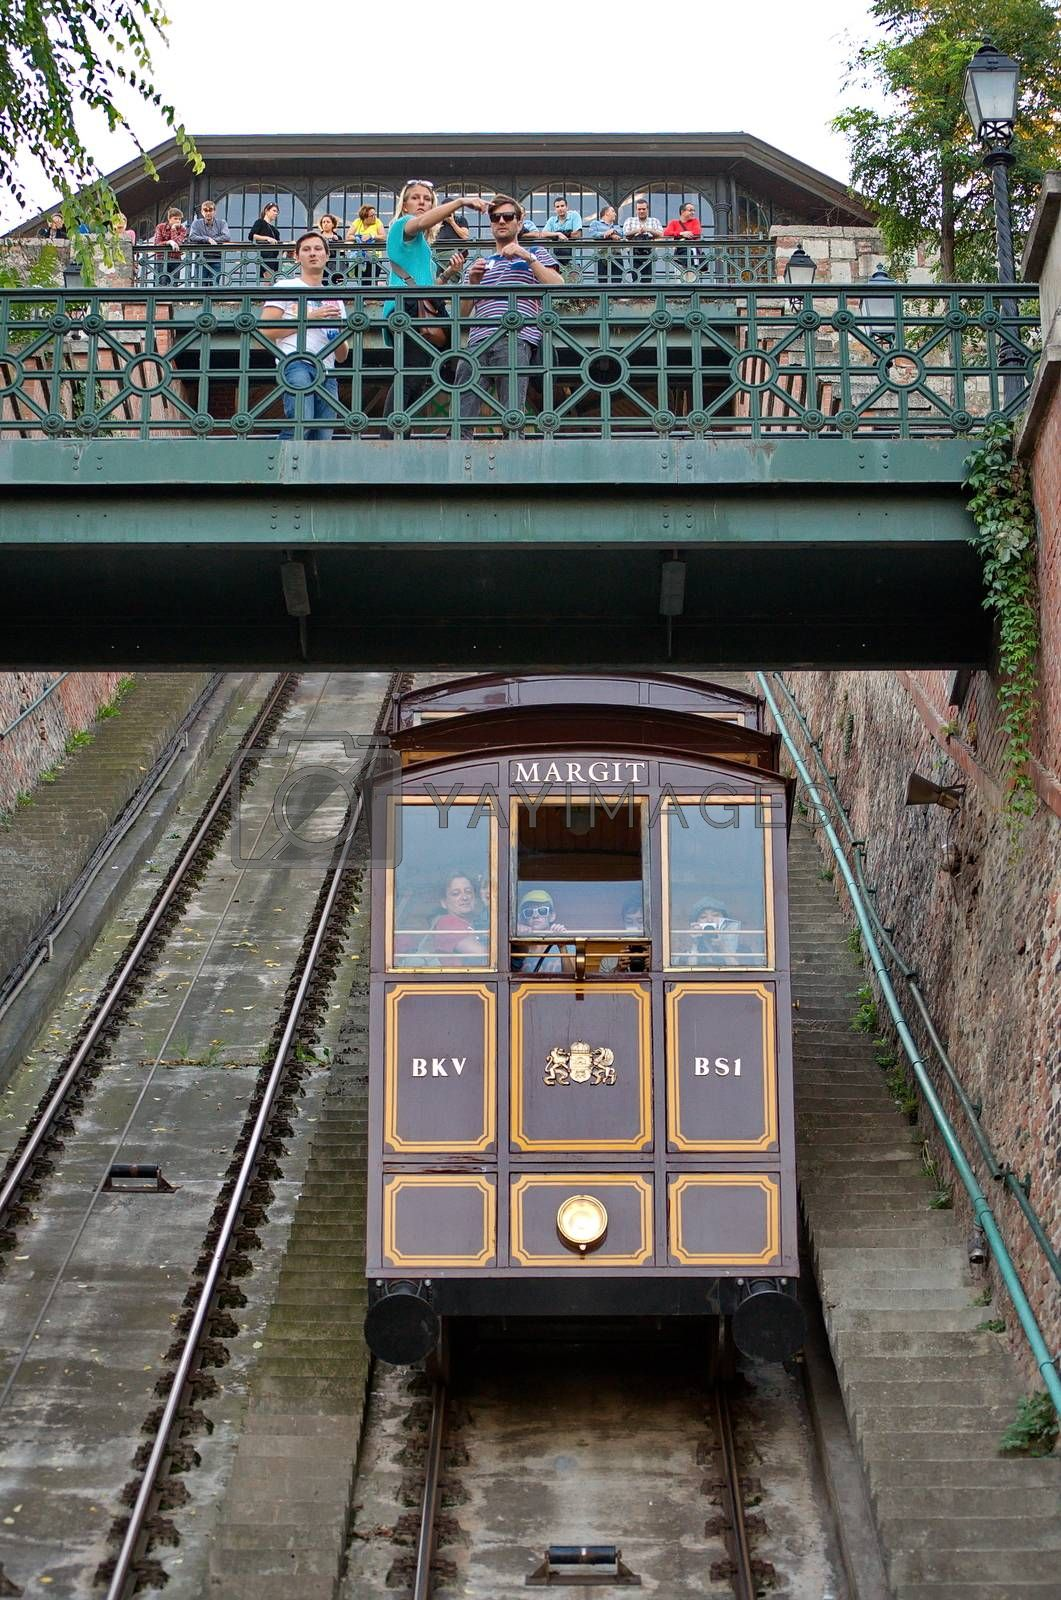 BUDAPEST - OCTOBER 28: Funicular in Budapest is part of the UNESCO world heritage since 1987. Taken on October 28th in Budapest, Hungary